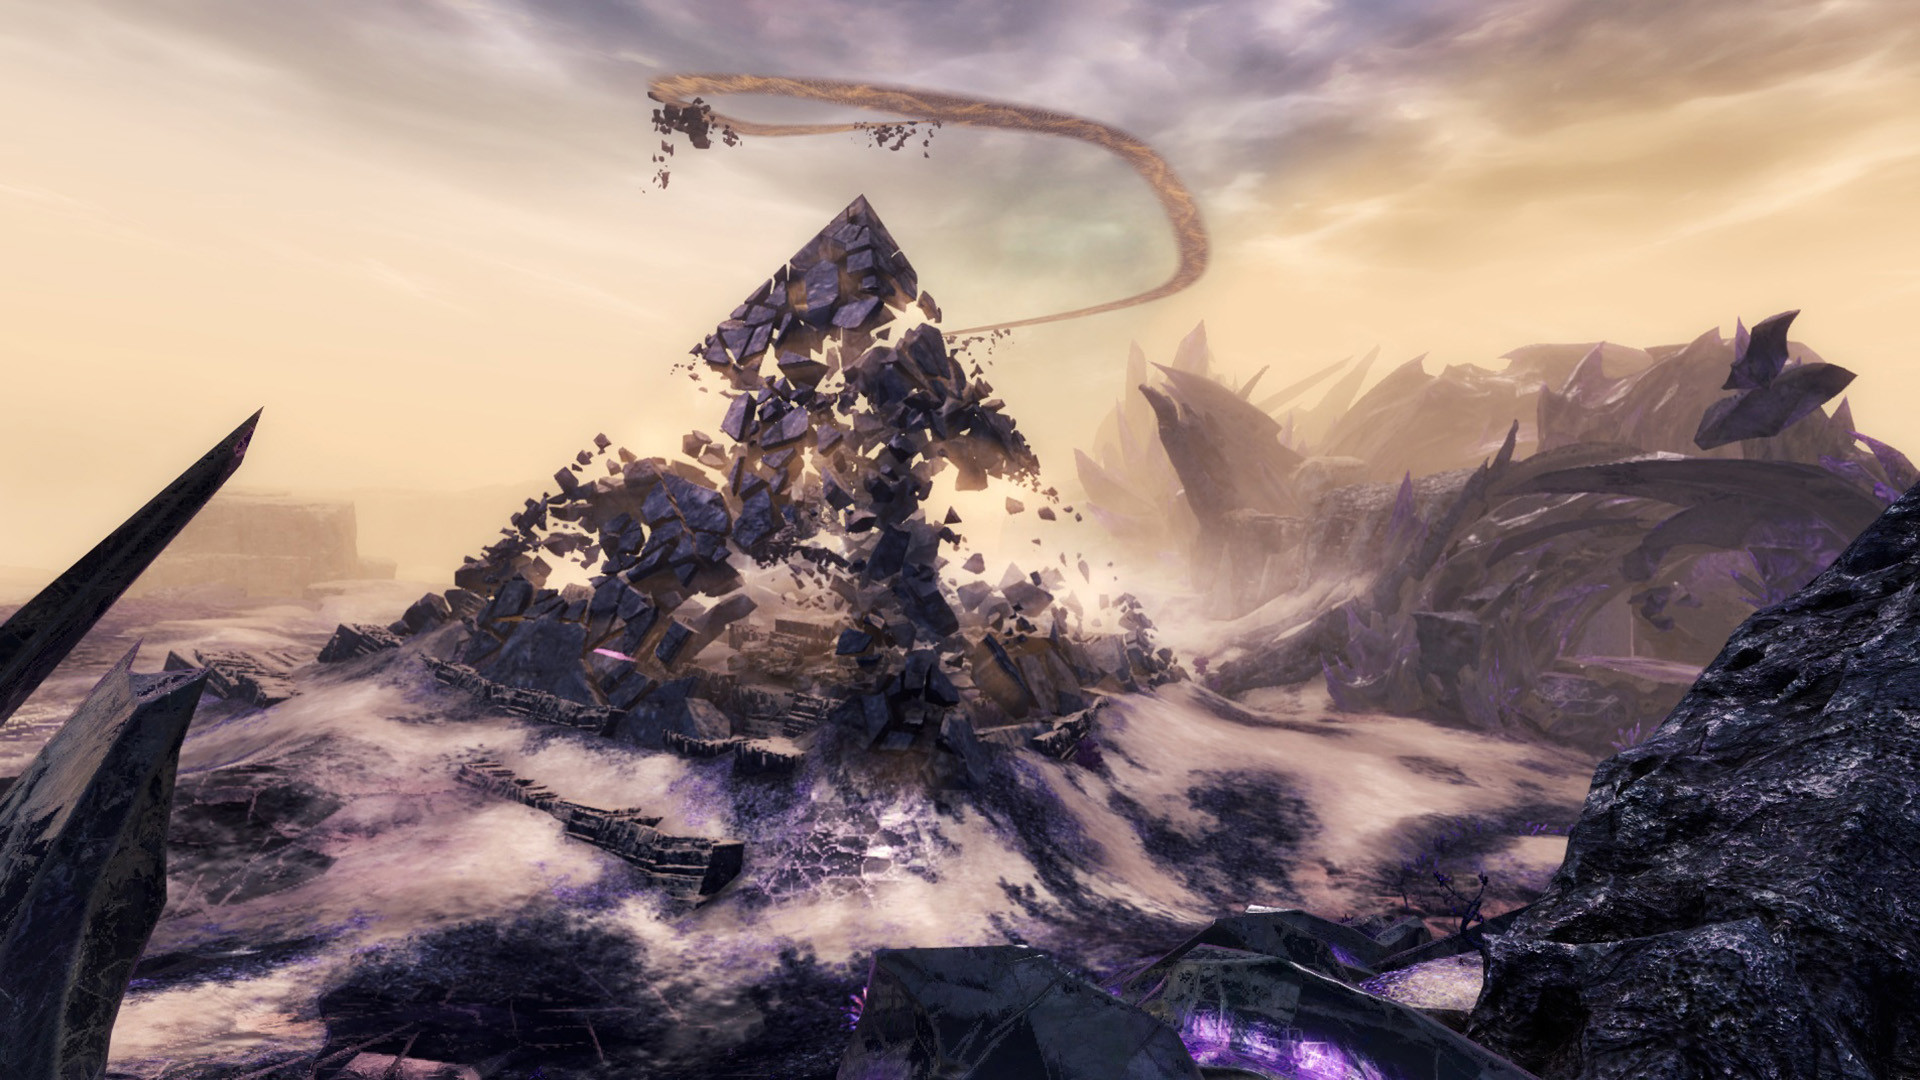 Gw2 Backgrounds Posted By Ethan Peltier